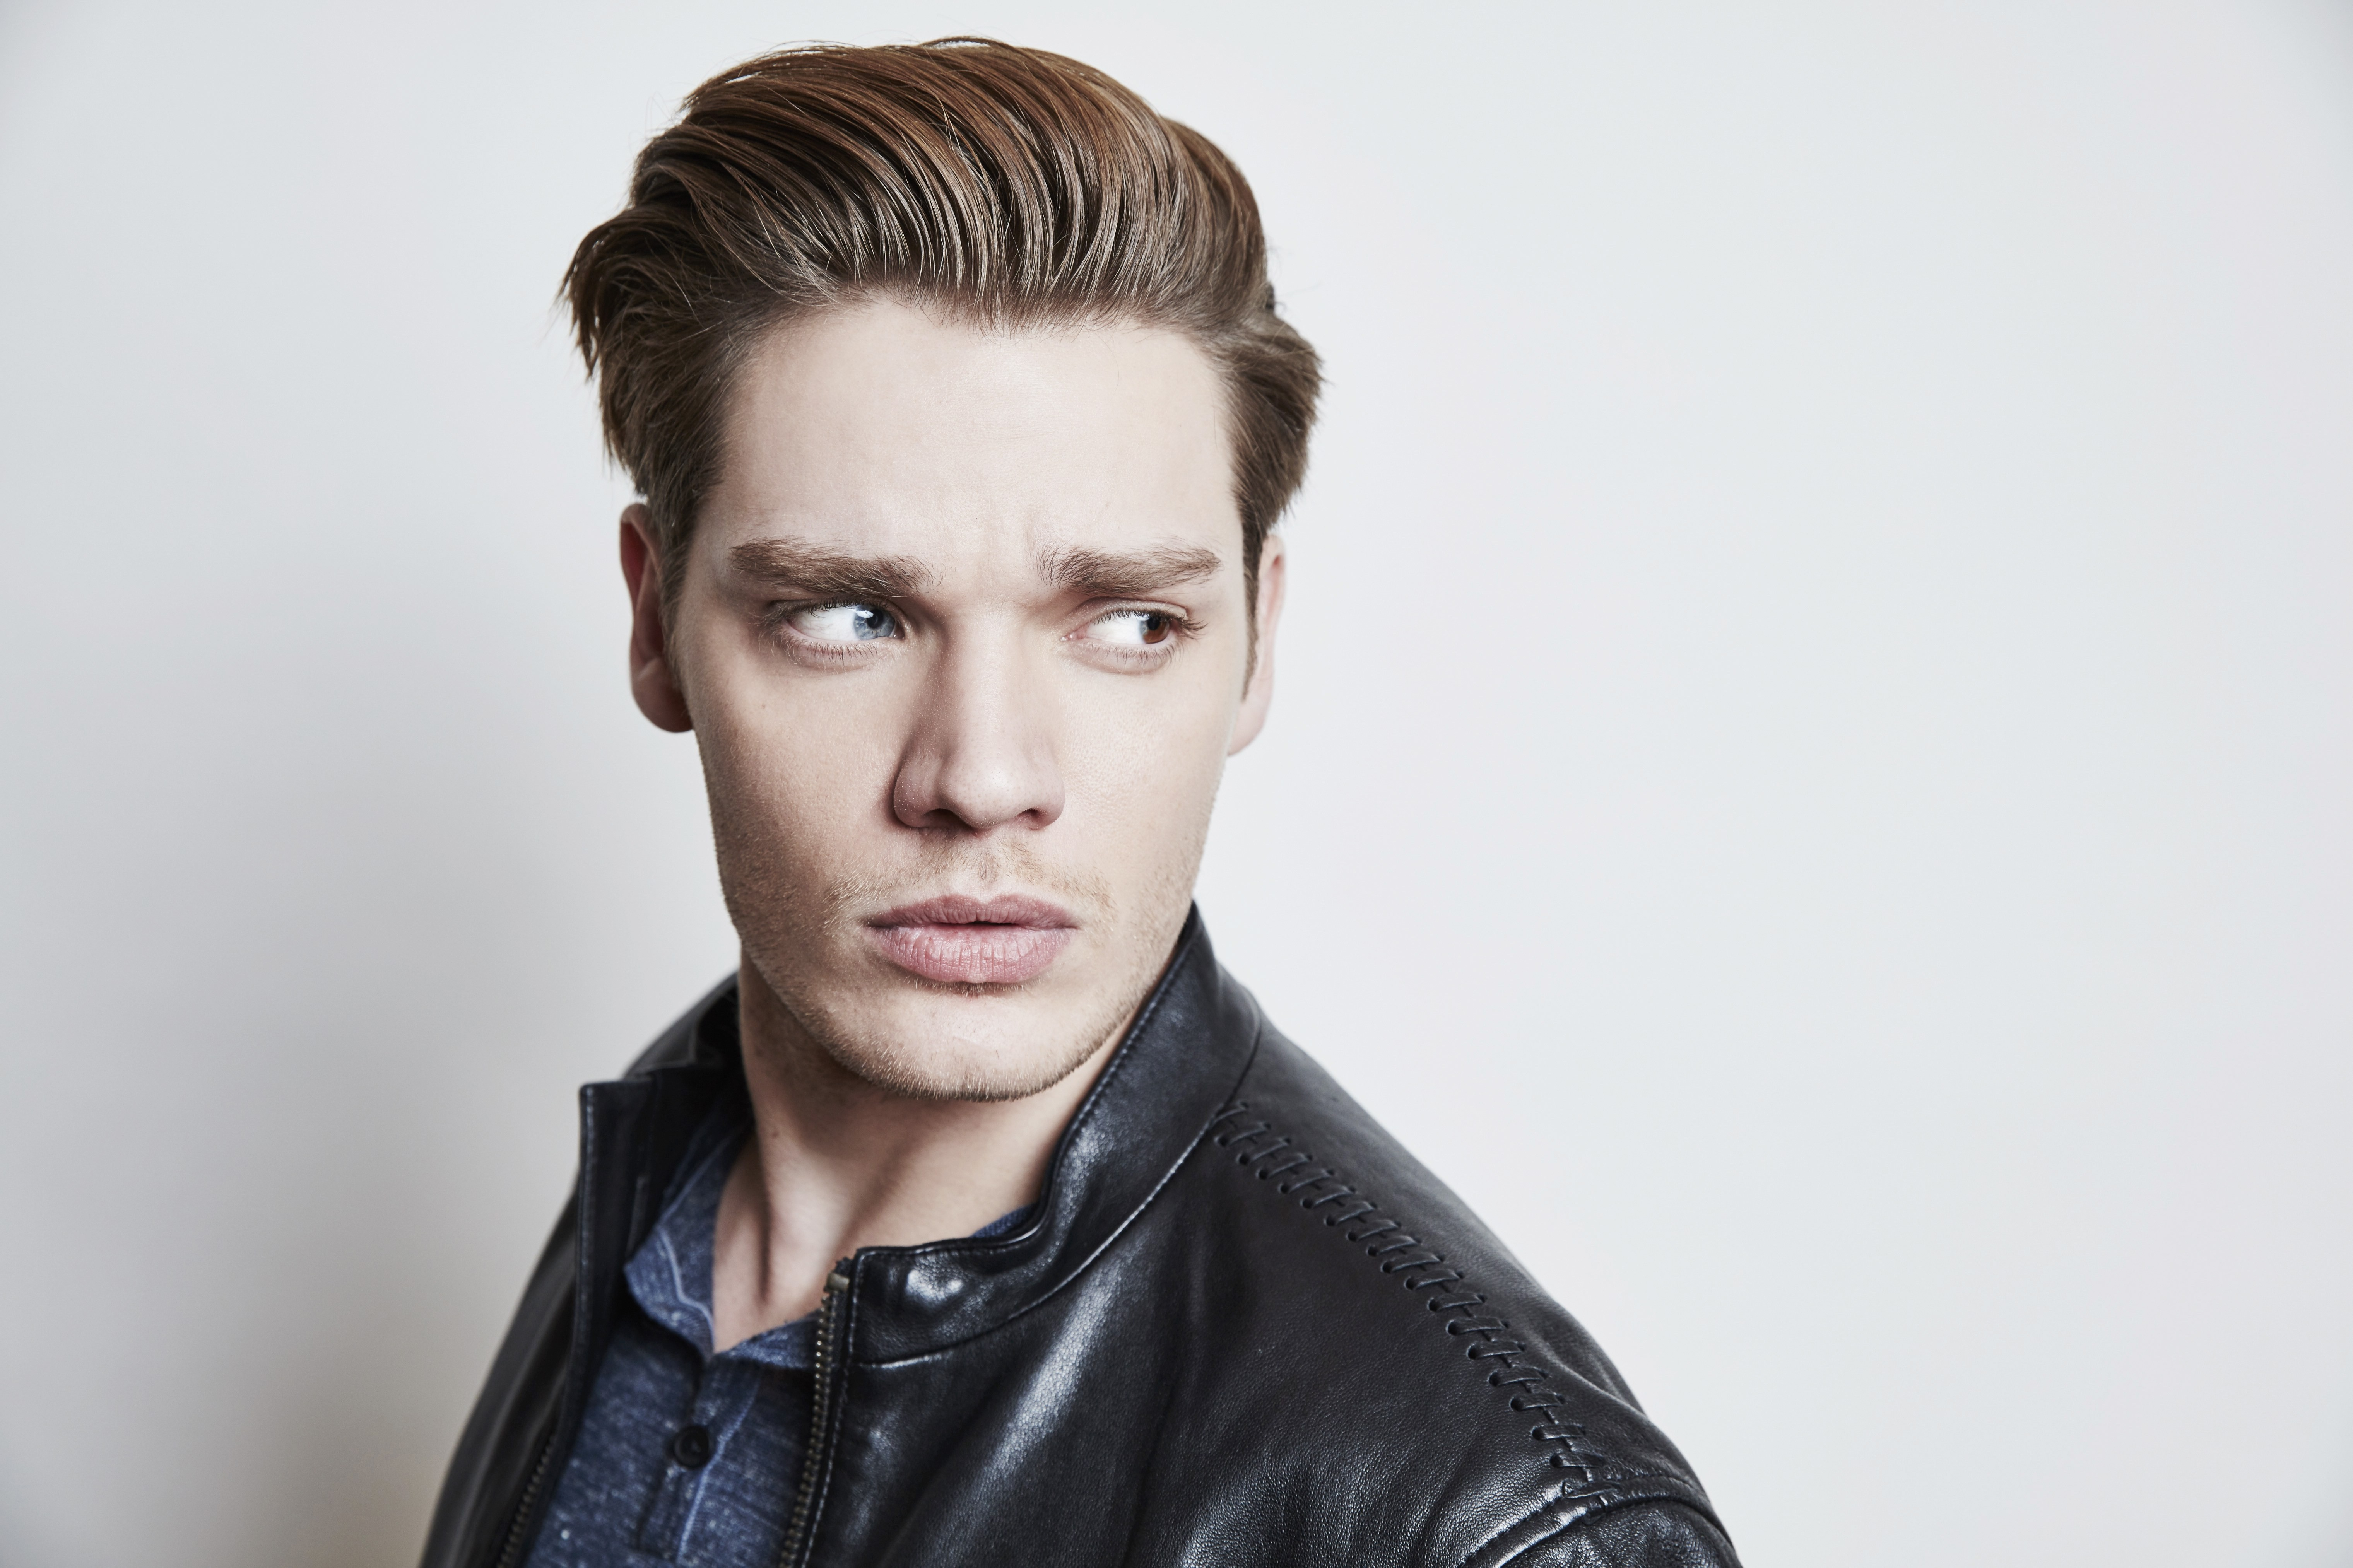 Rich Quotes Wallpaper Wallpaper Dominic Sherwood Photo 5k Celebrities 16516